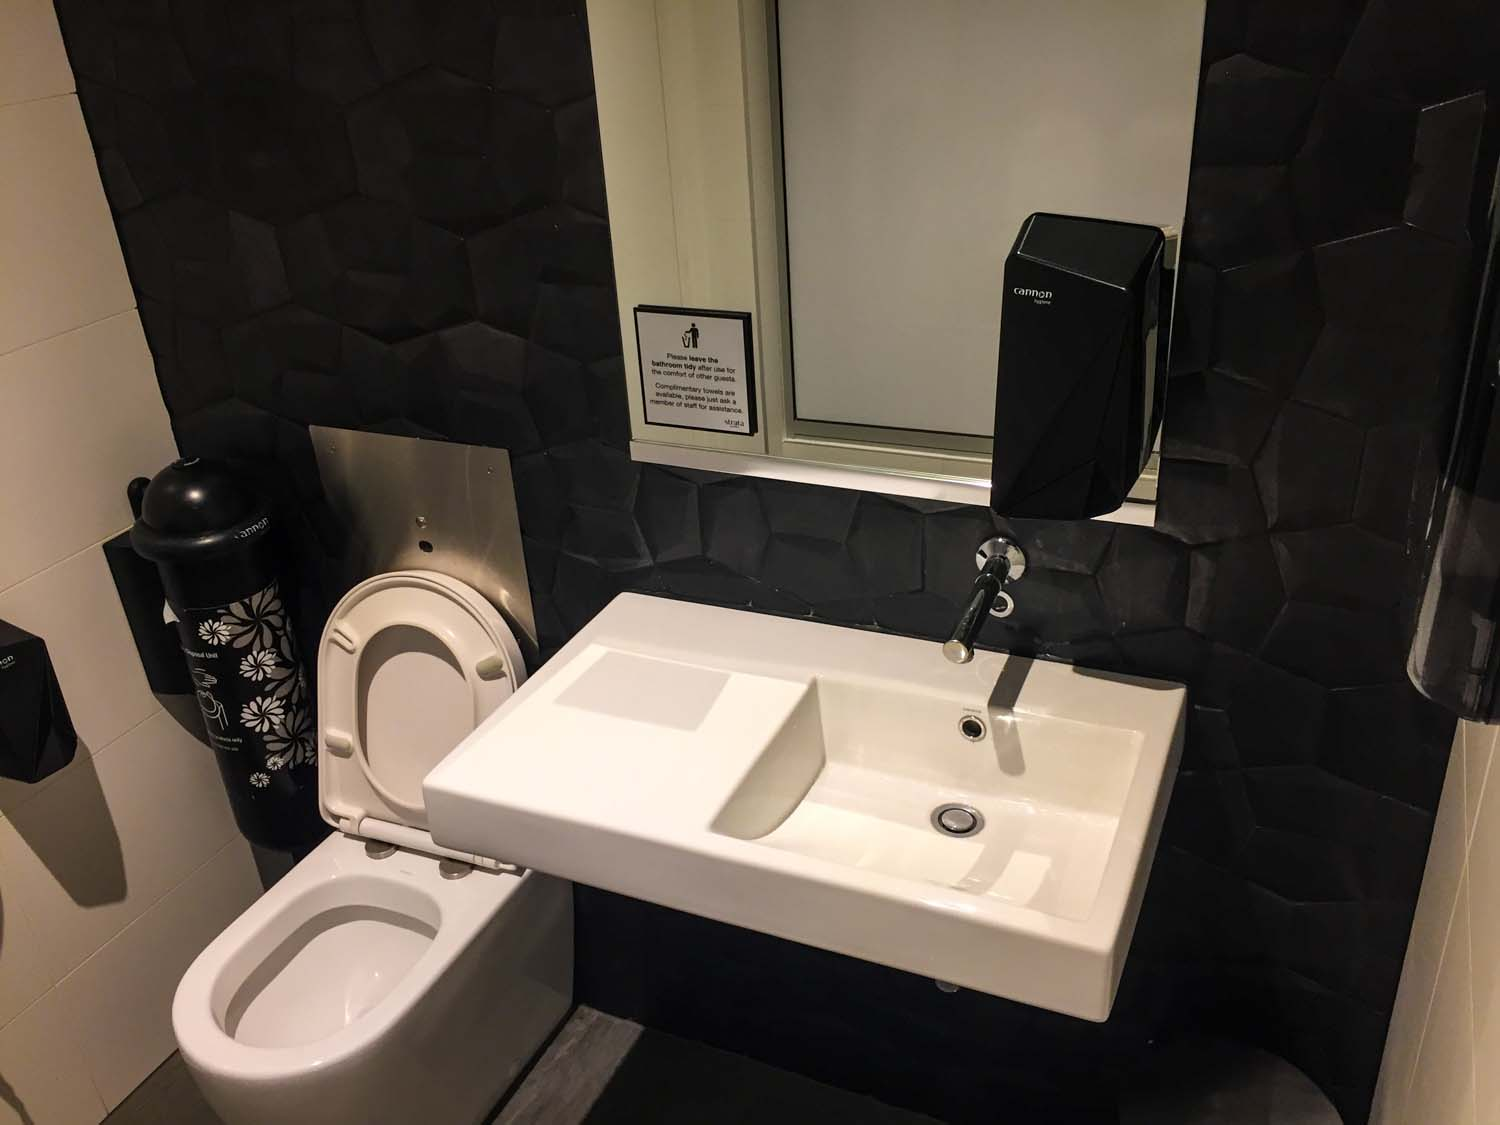 Strata Lounge auckland airport - bathroom